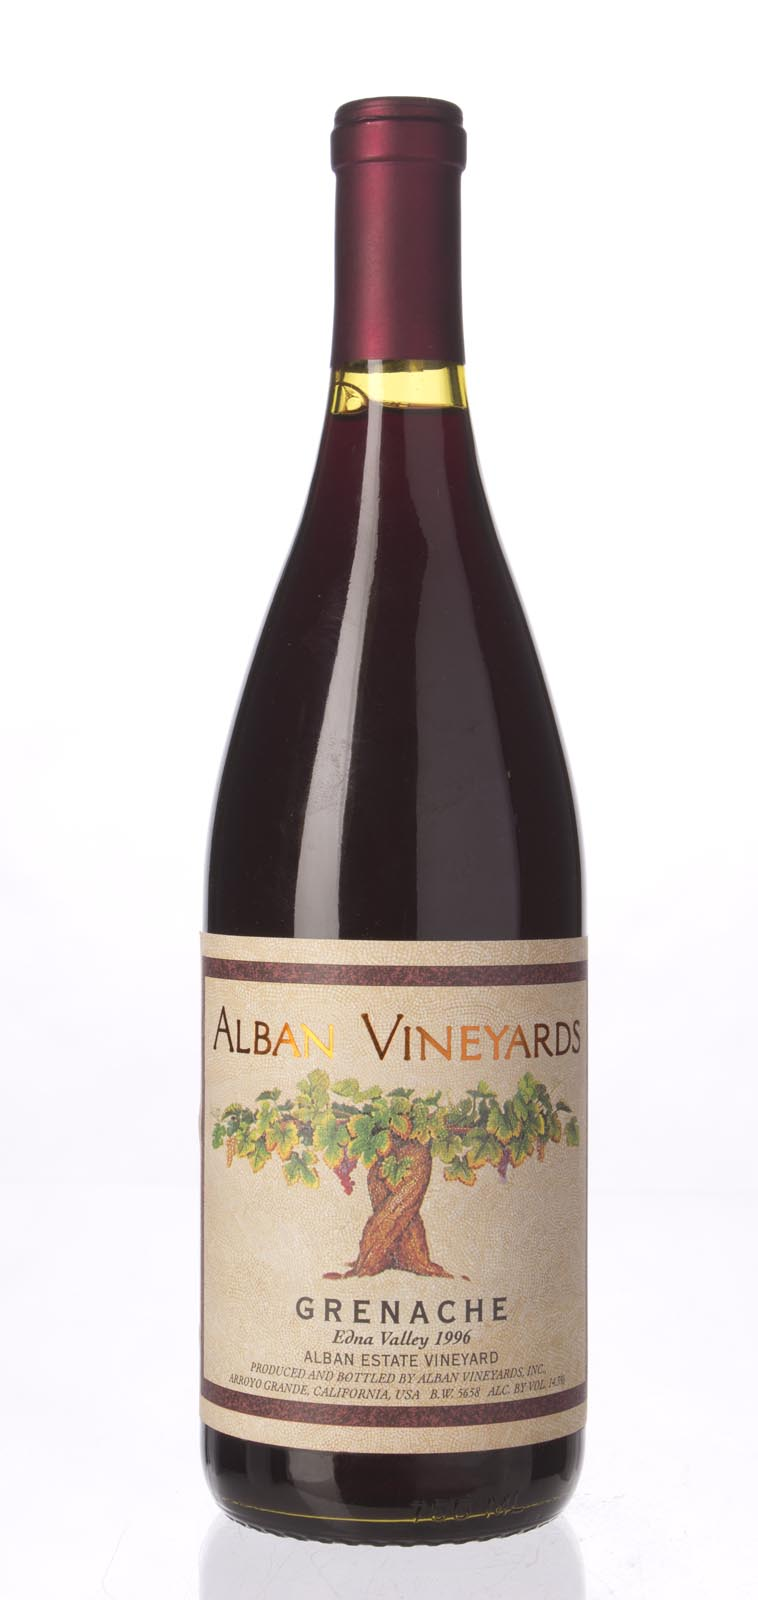 Alban Vineyards Grenache Alban Estate Vineyard 1996, 750mL () from The BPW - Merchants of rare and fine wines.